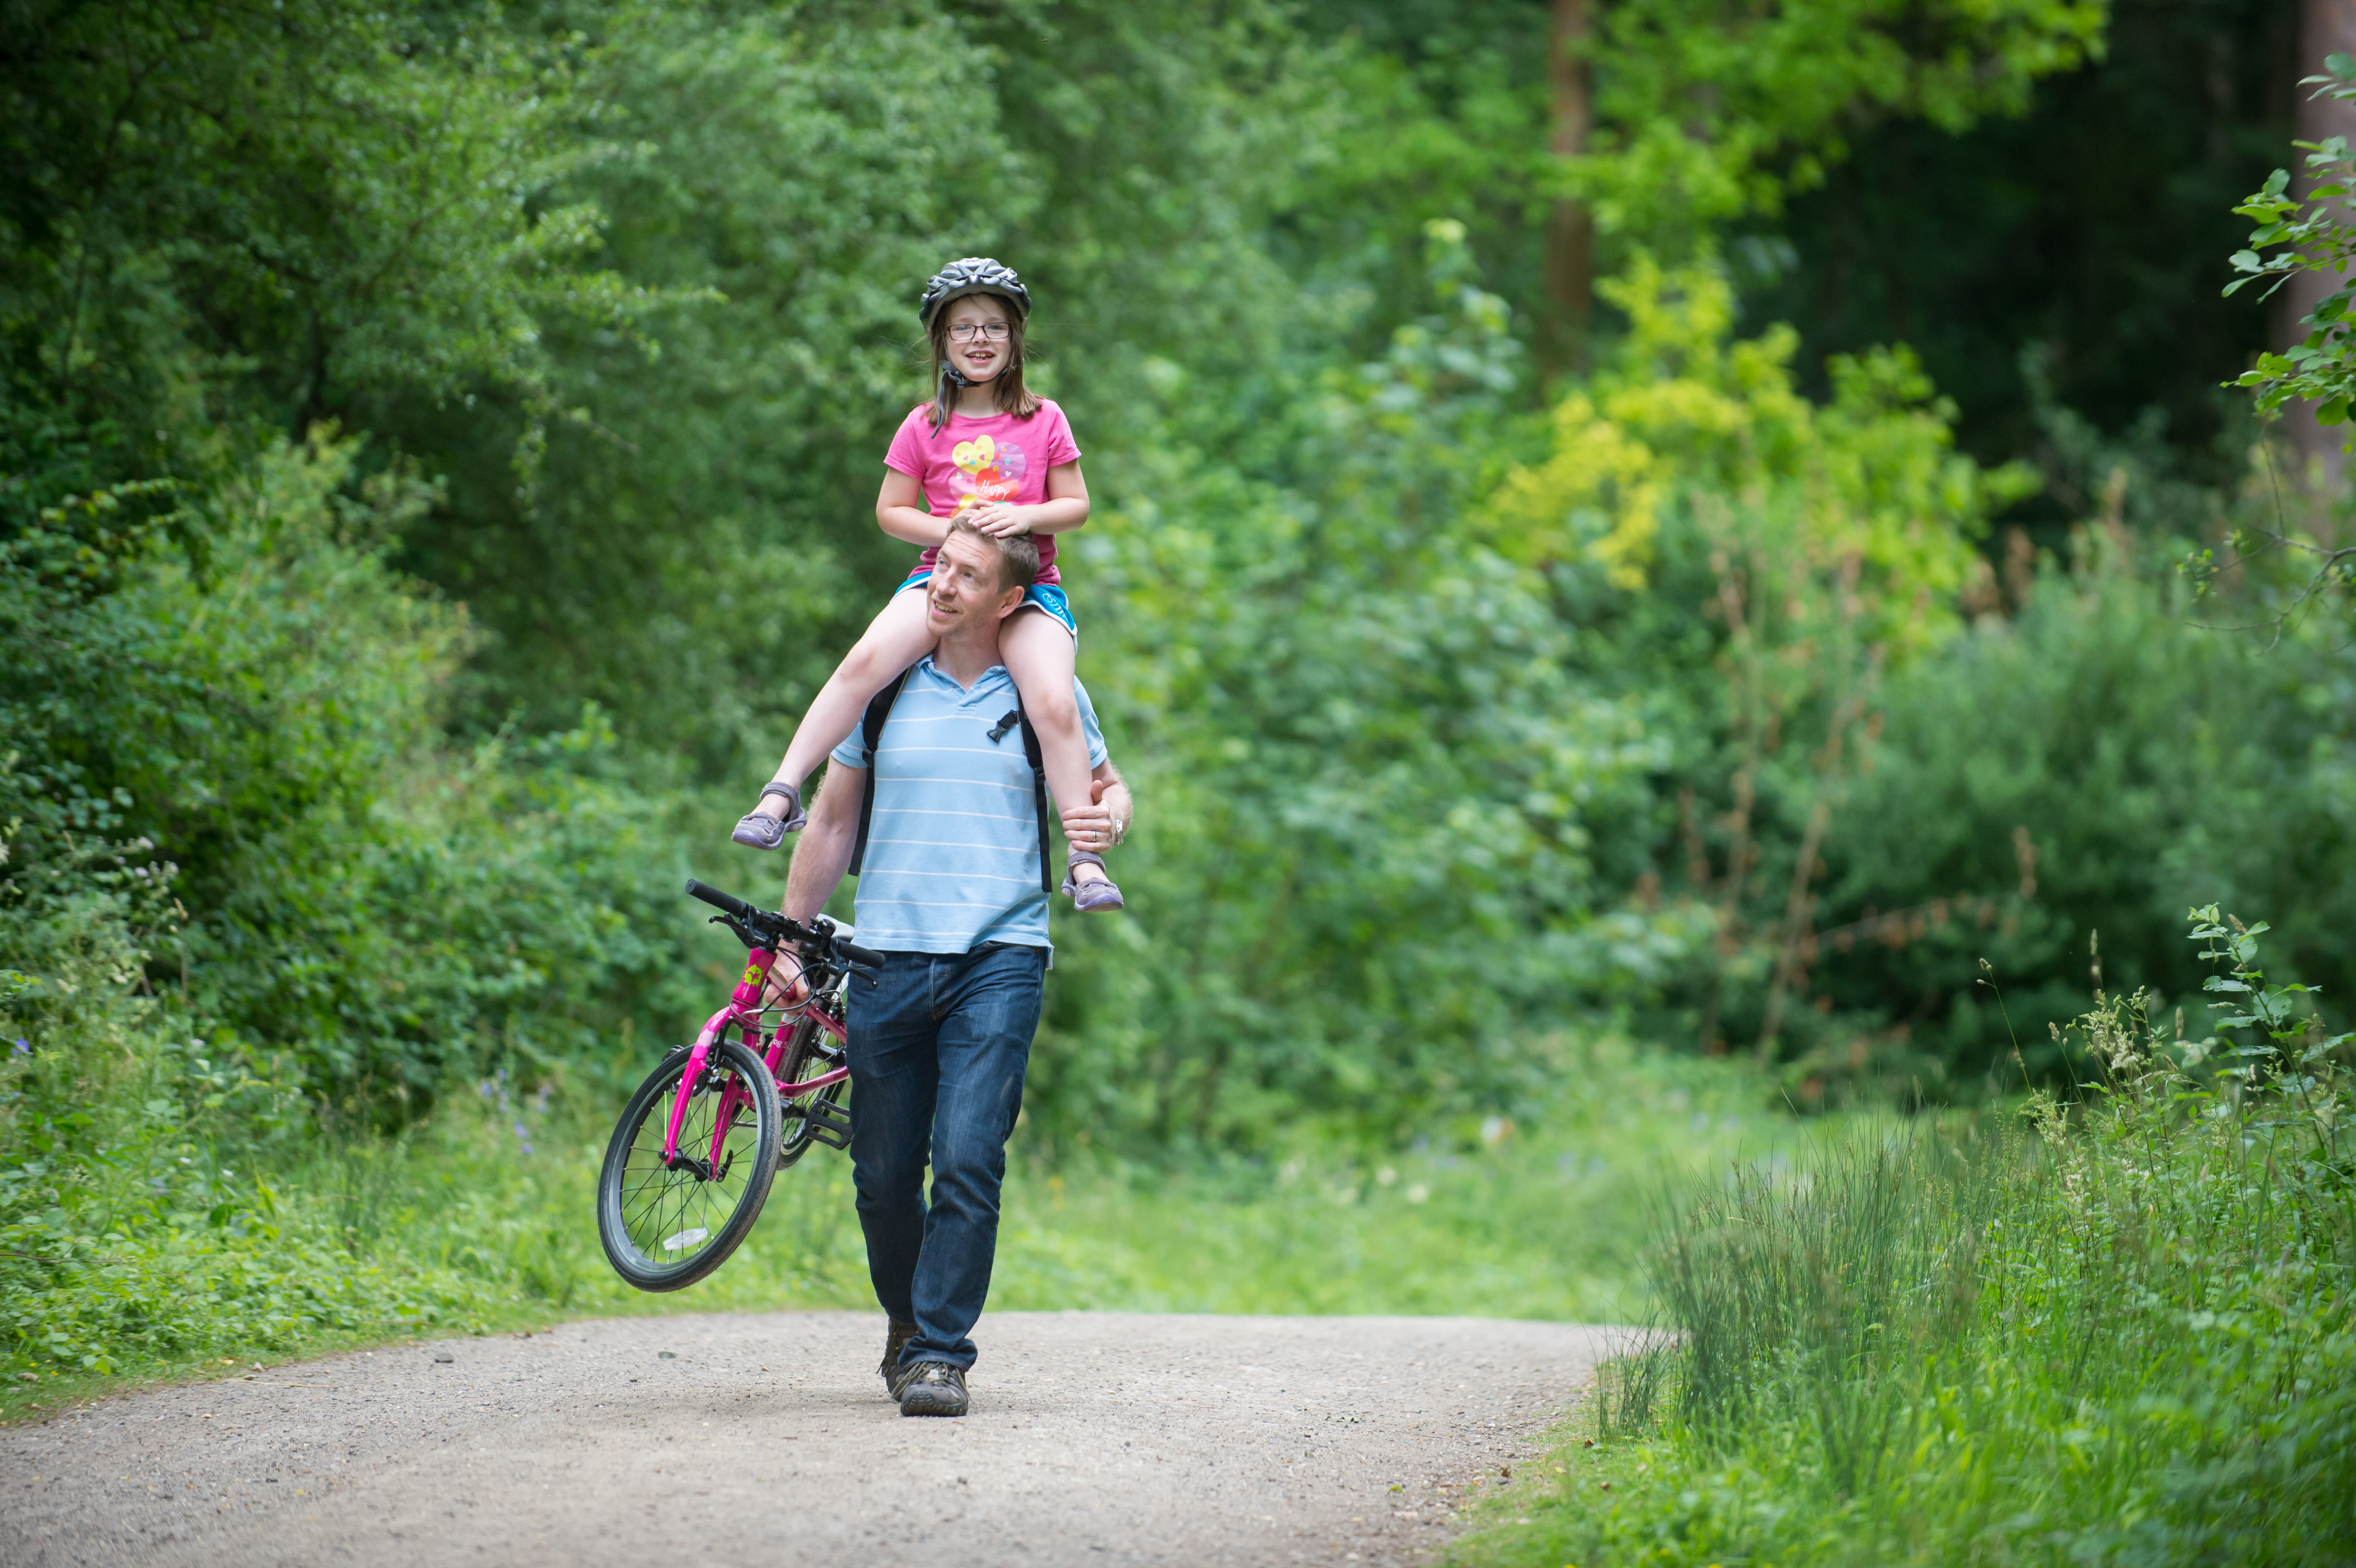 dad carrying daughter and bike